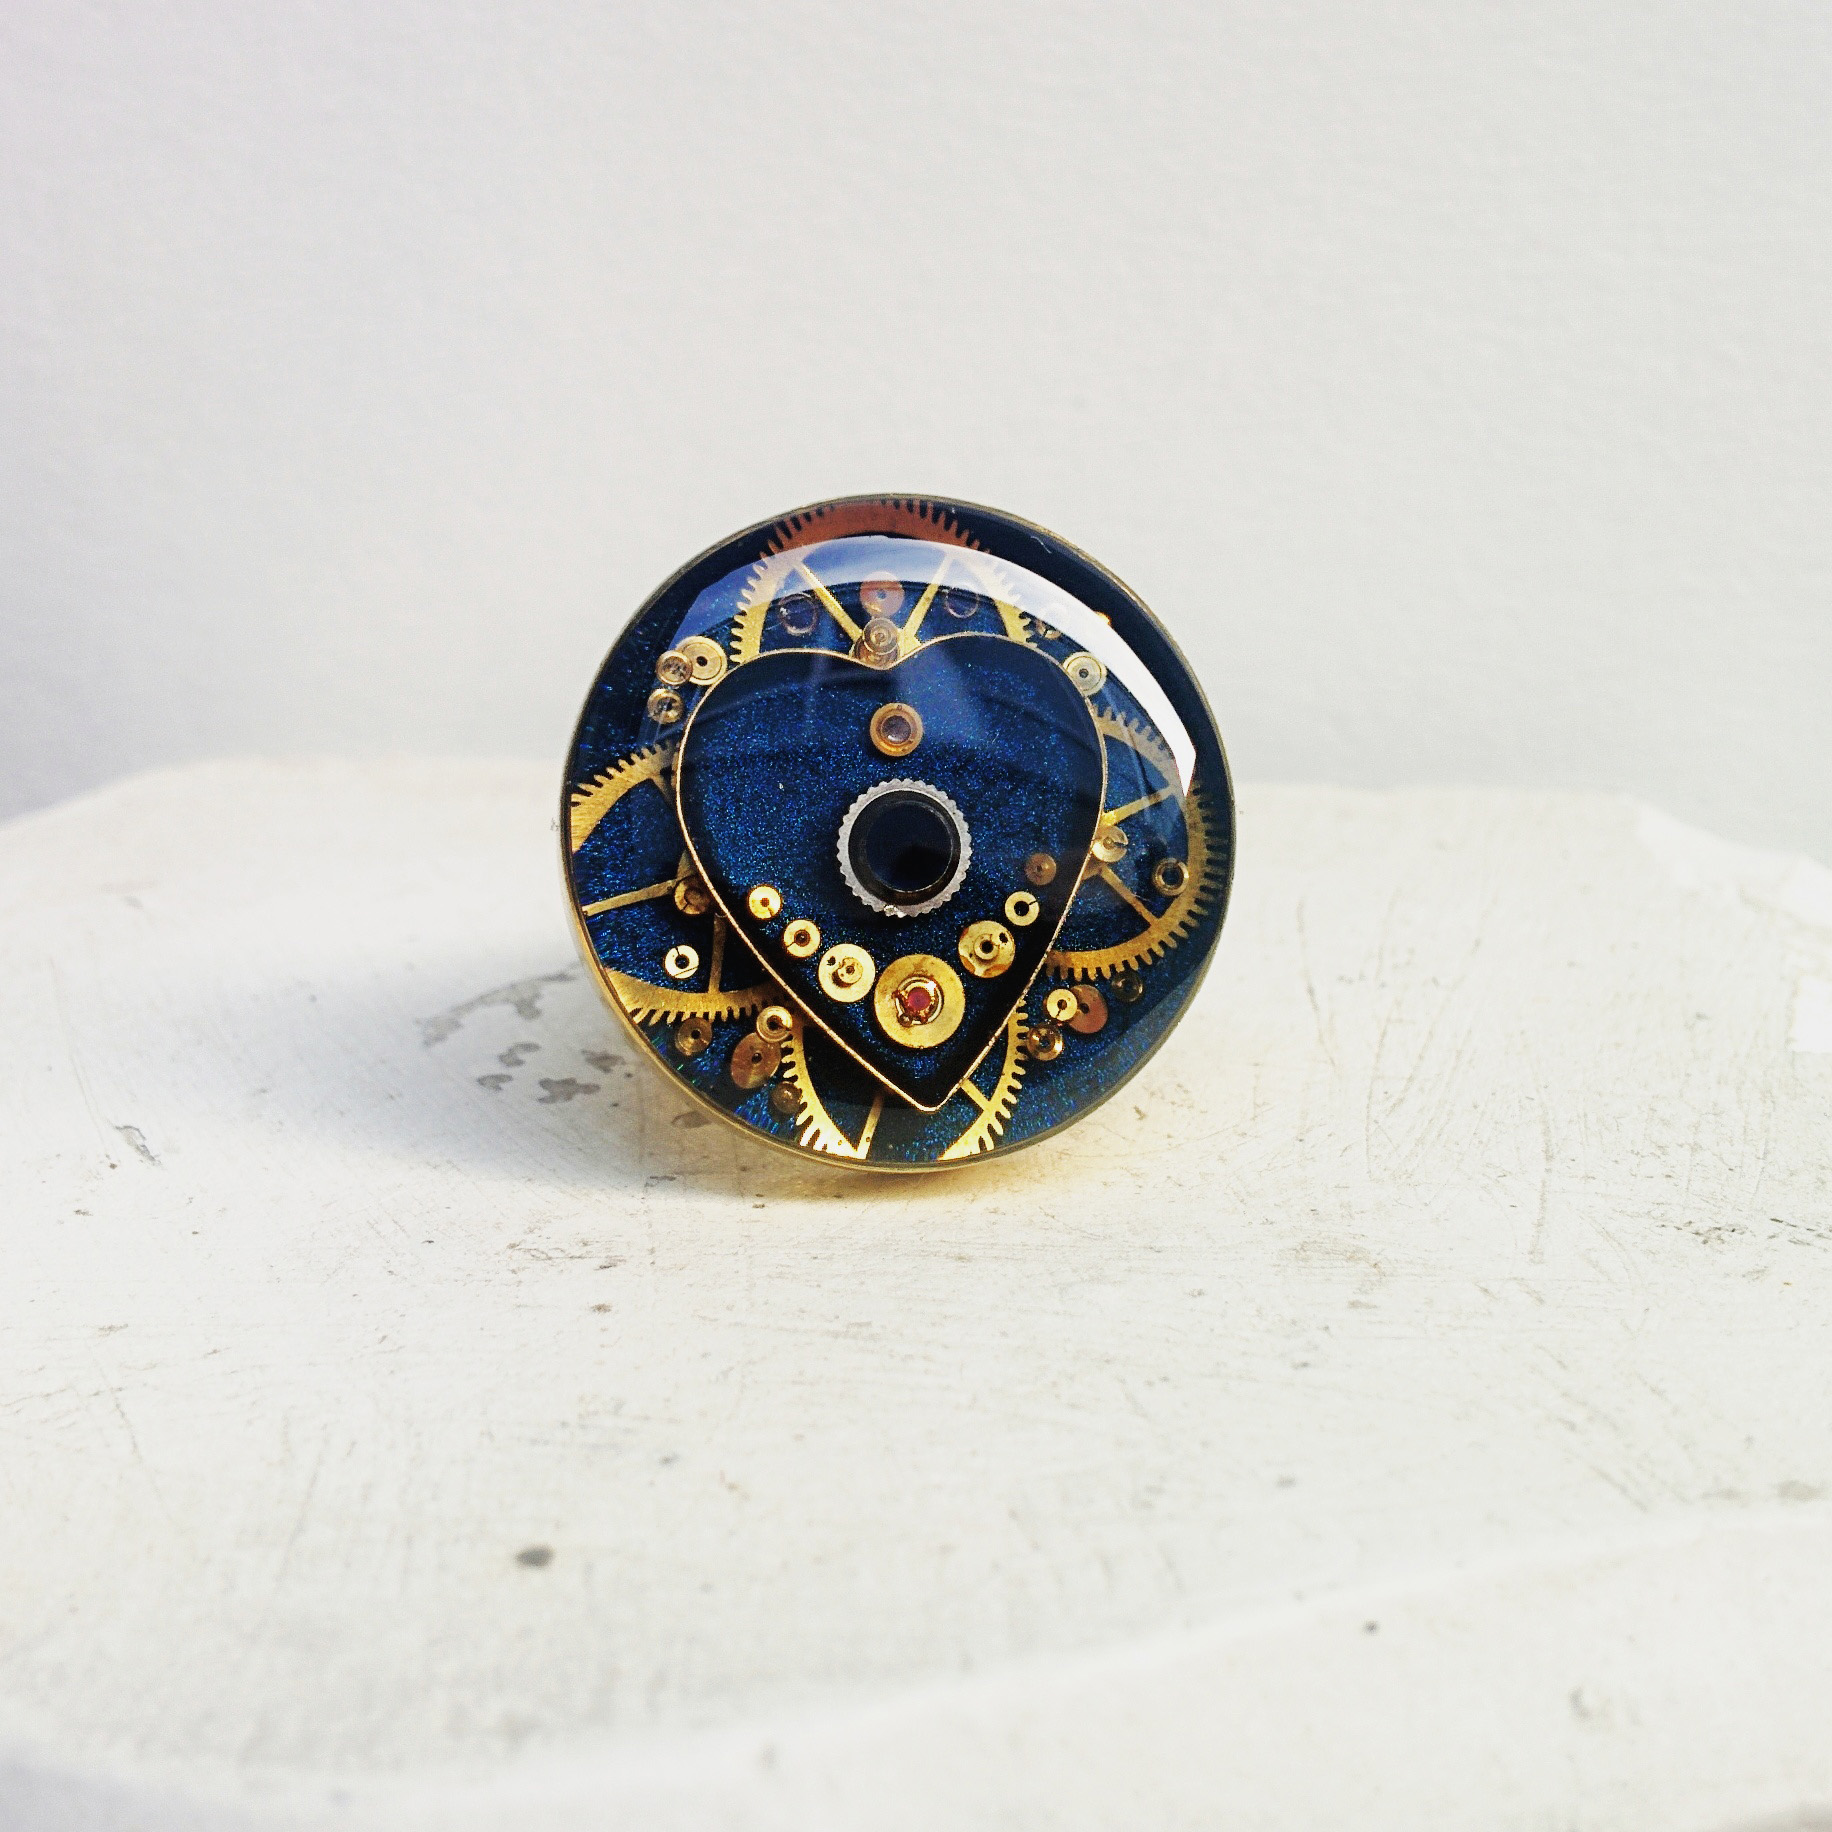 Six layer sapphire and golden watch part ring will make its debut at this show!